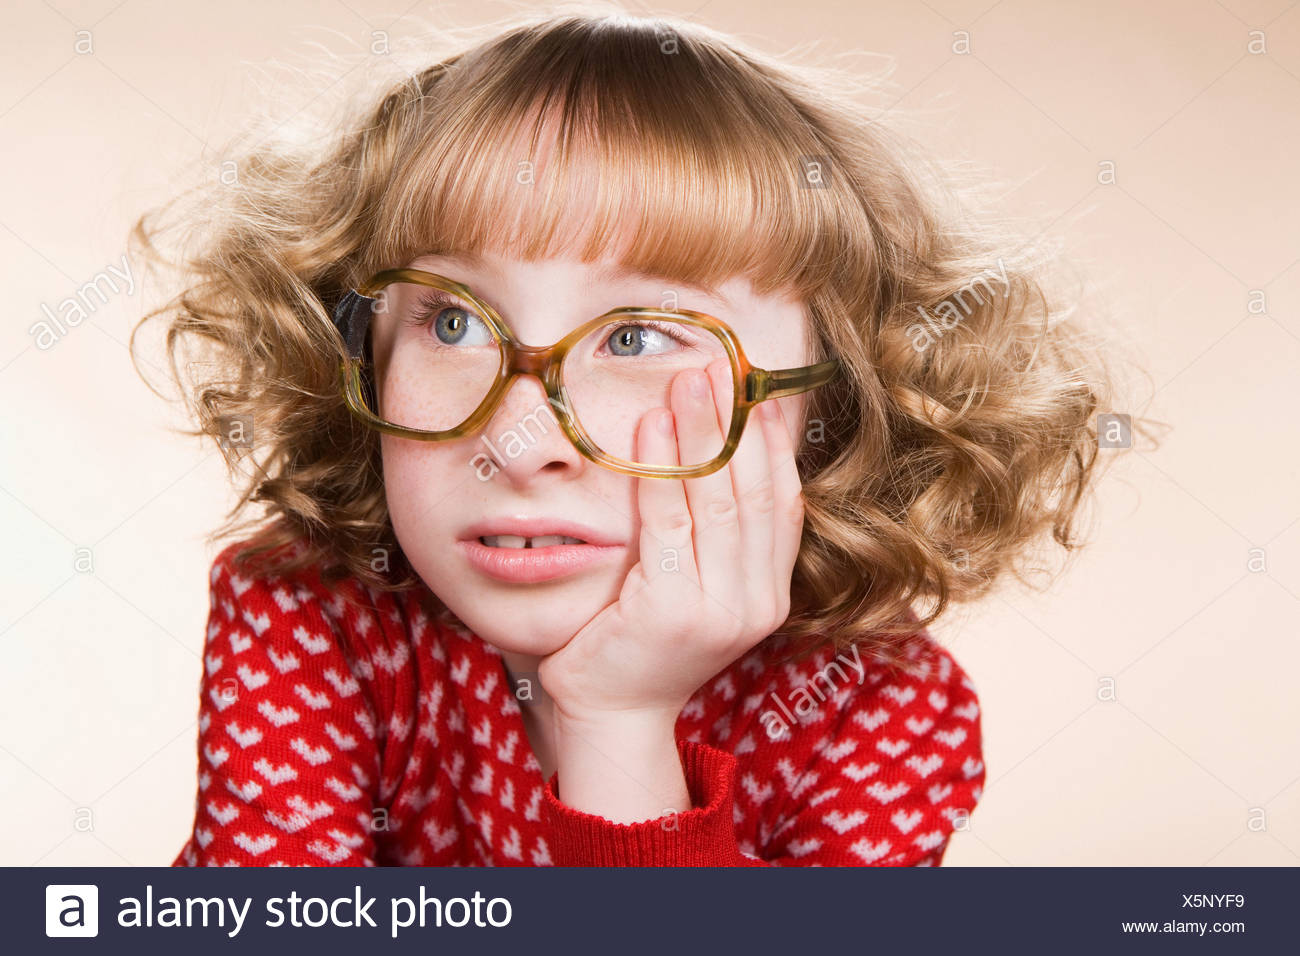 Portrait of a bored geeky girl - Stock Image